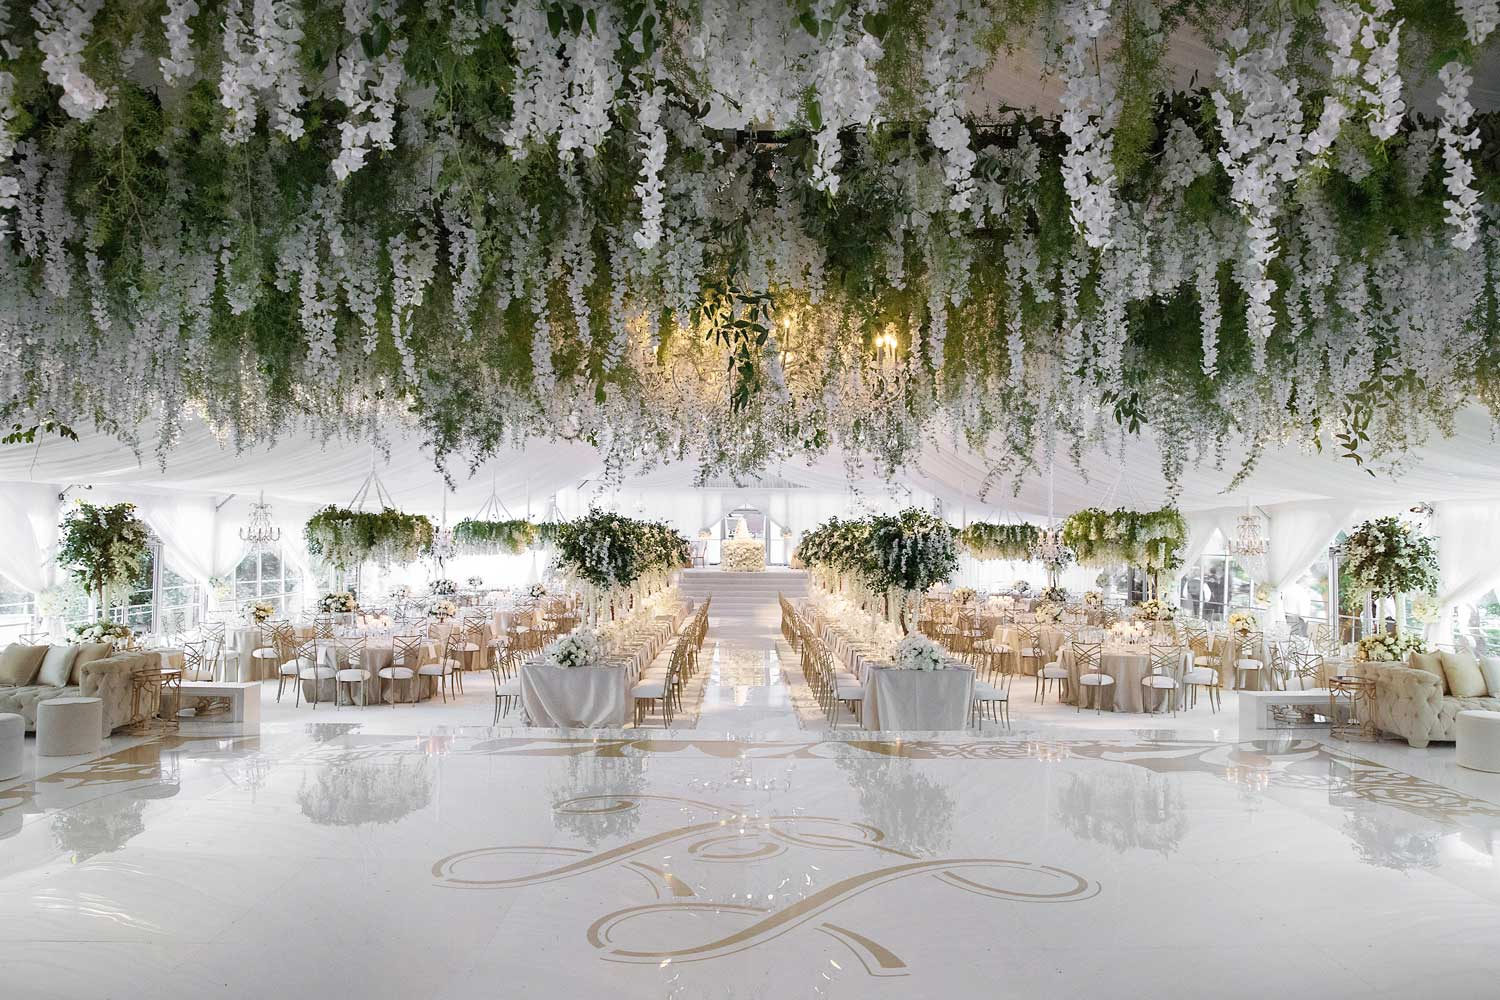 wedding reception white gold decor with pretty greenery ceiling installation over dance floor